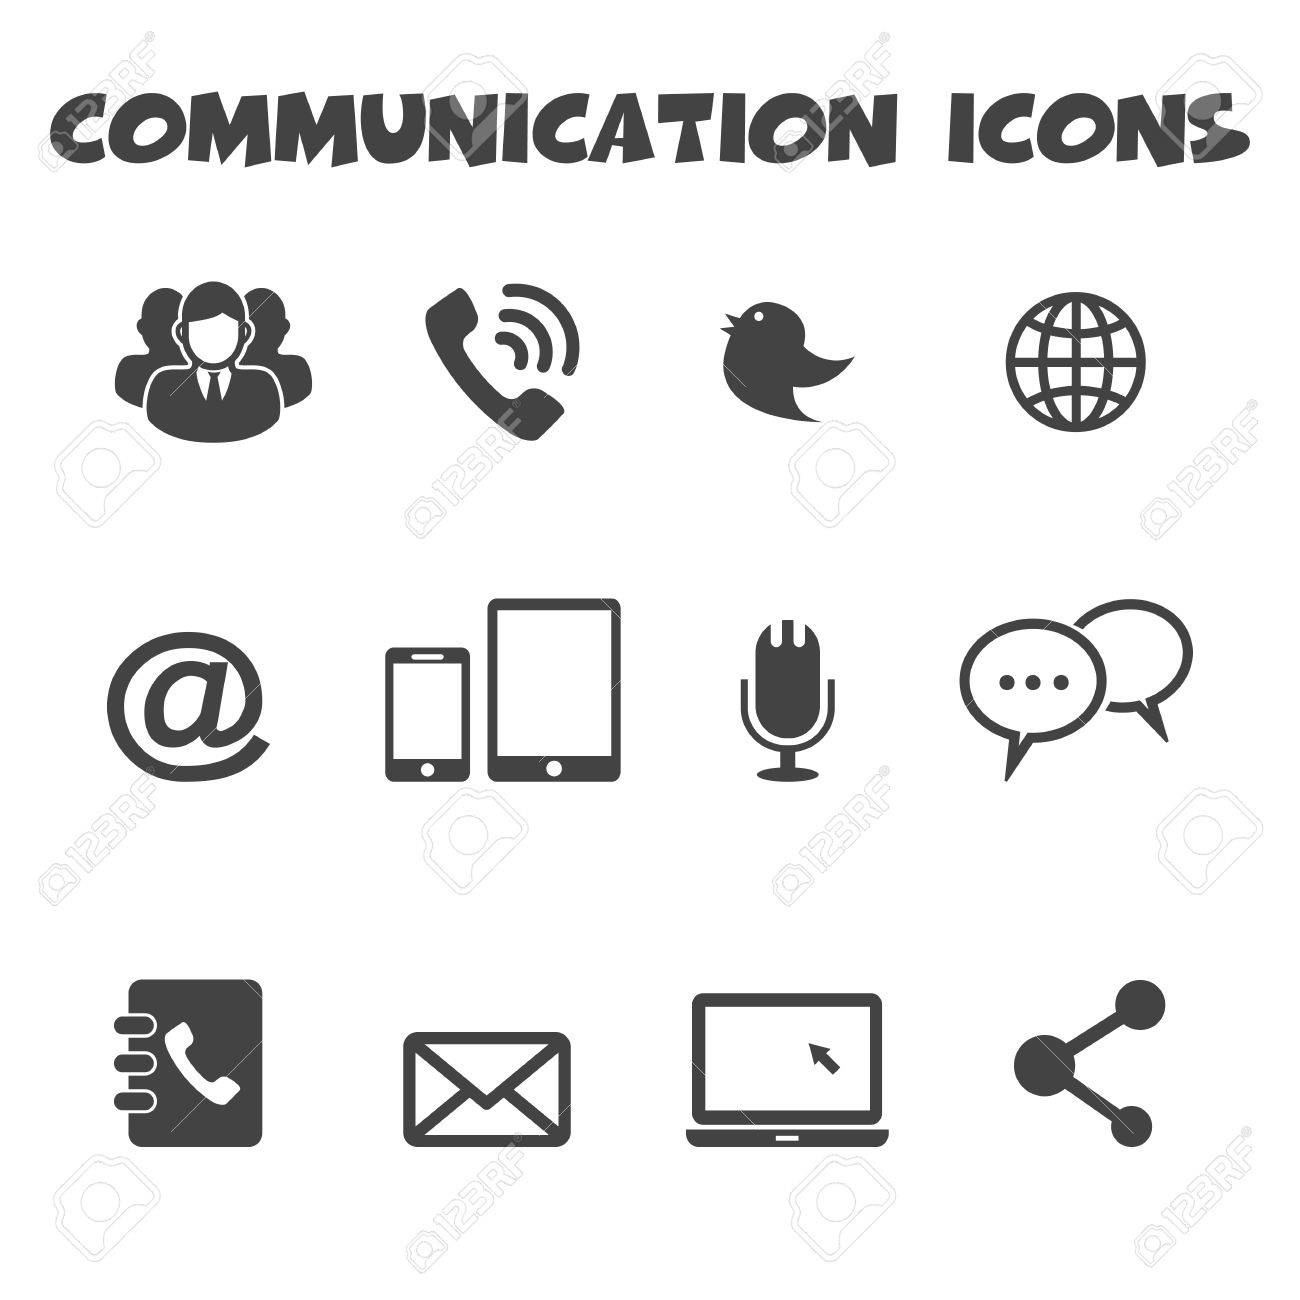 Communication icons symbols royalty free cliparts vectors and communication icons symbols stock vector 26621896 biocorpaavc Images